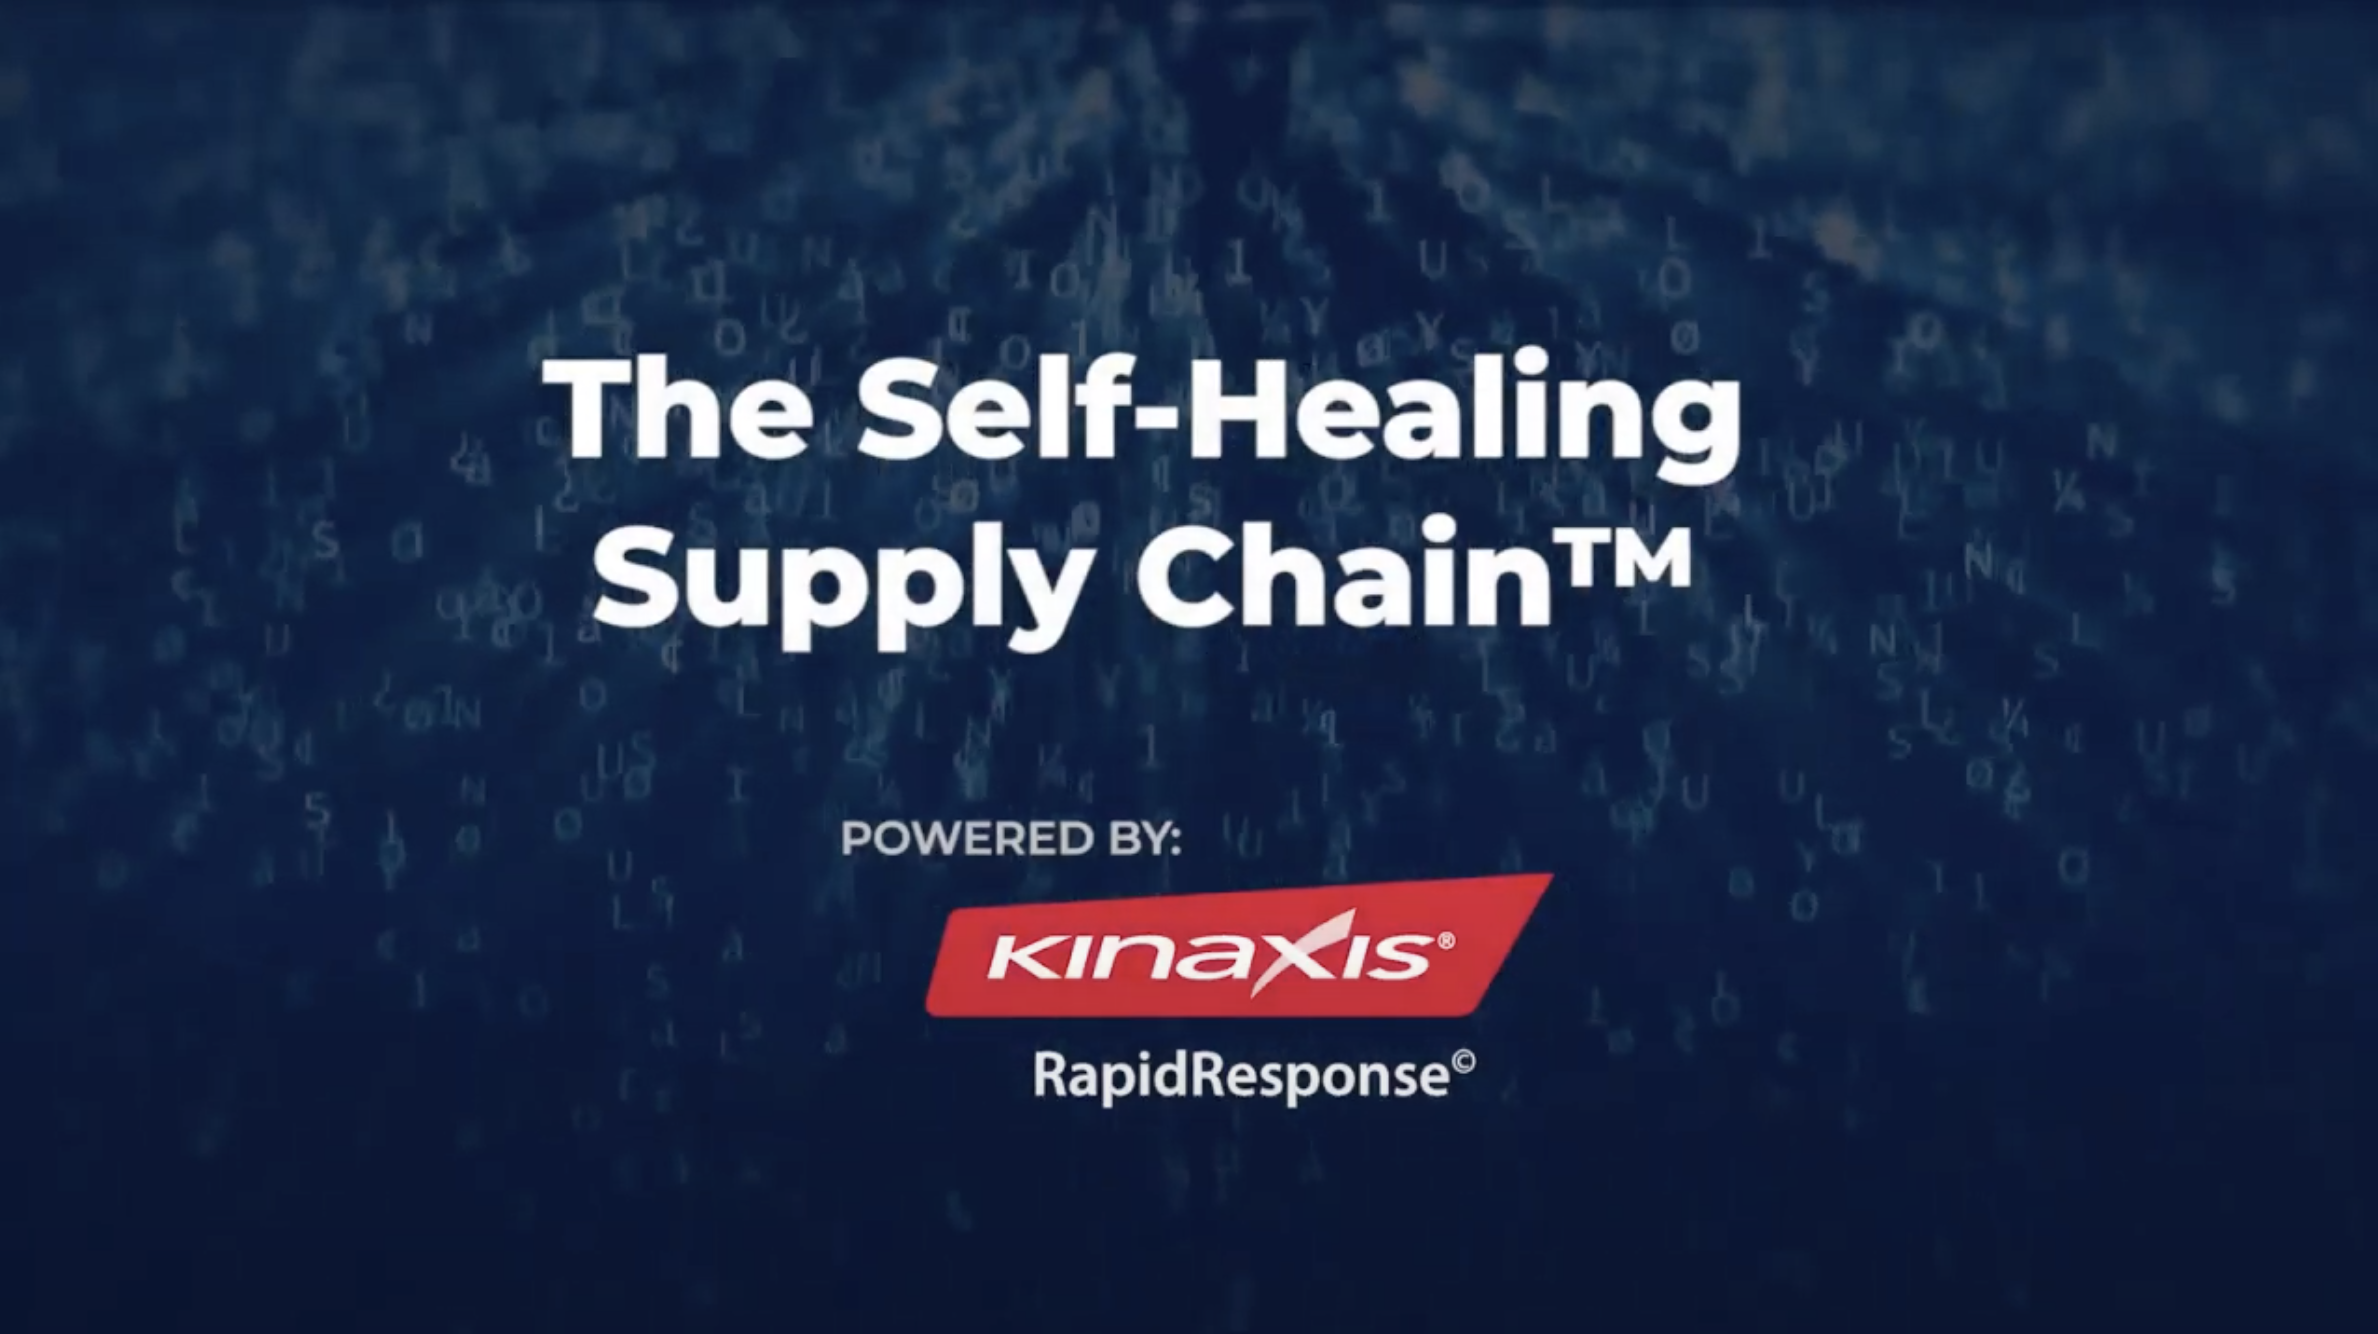 The self-healing supply chain